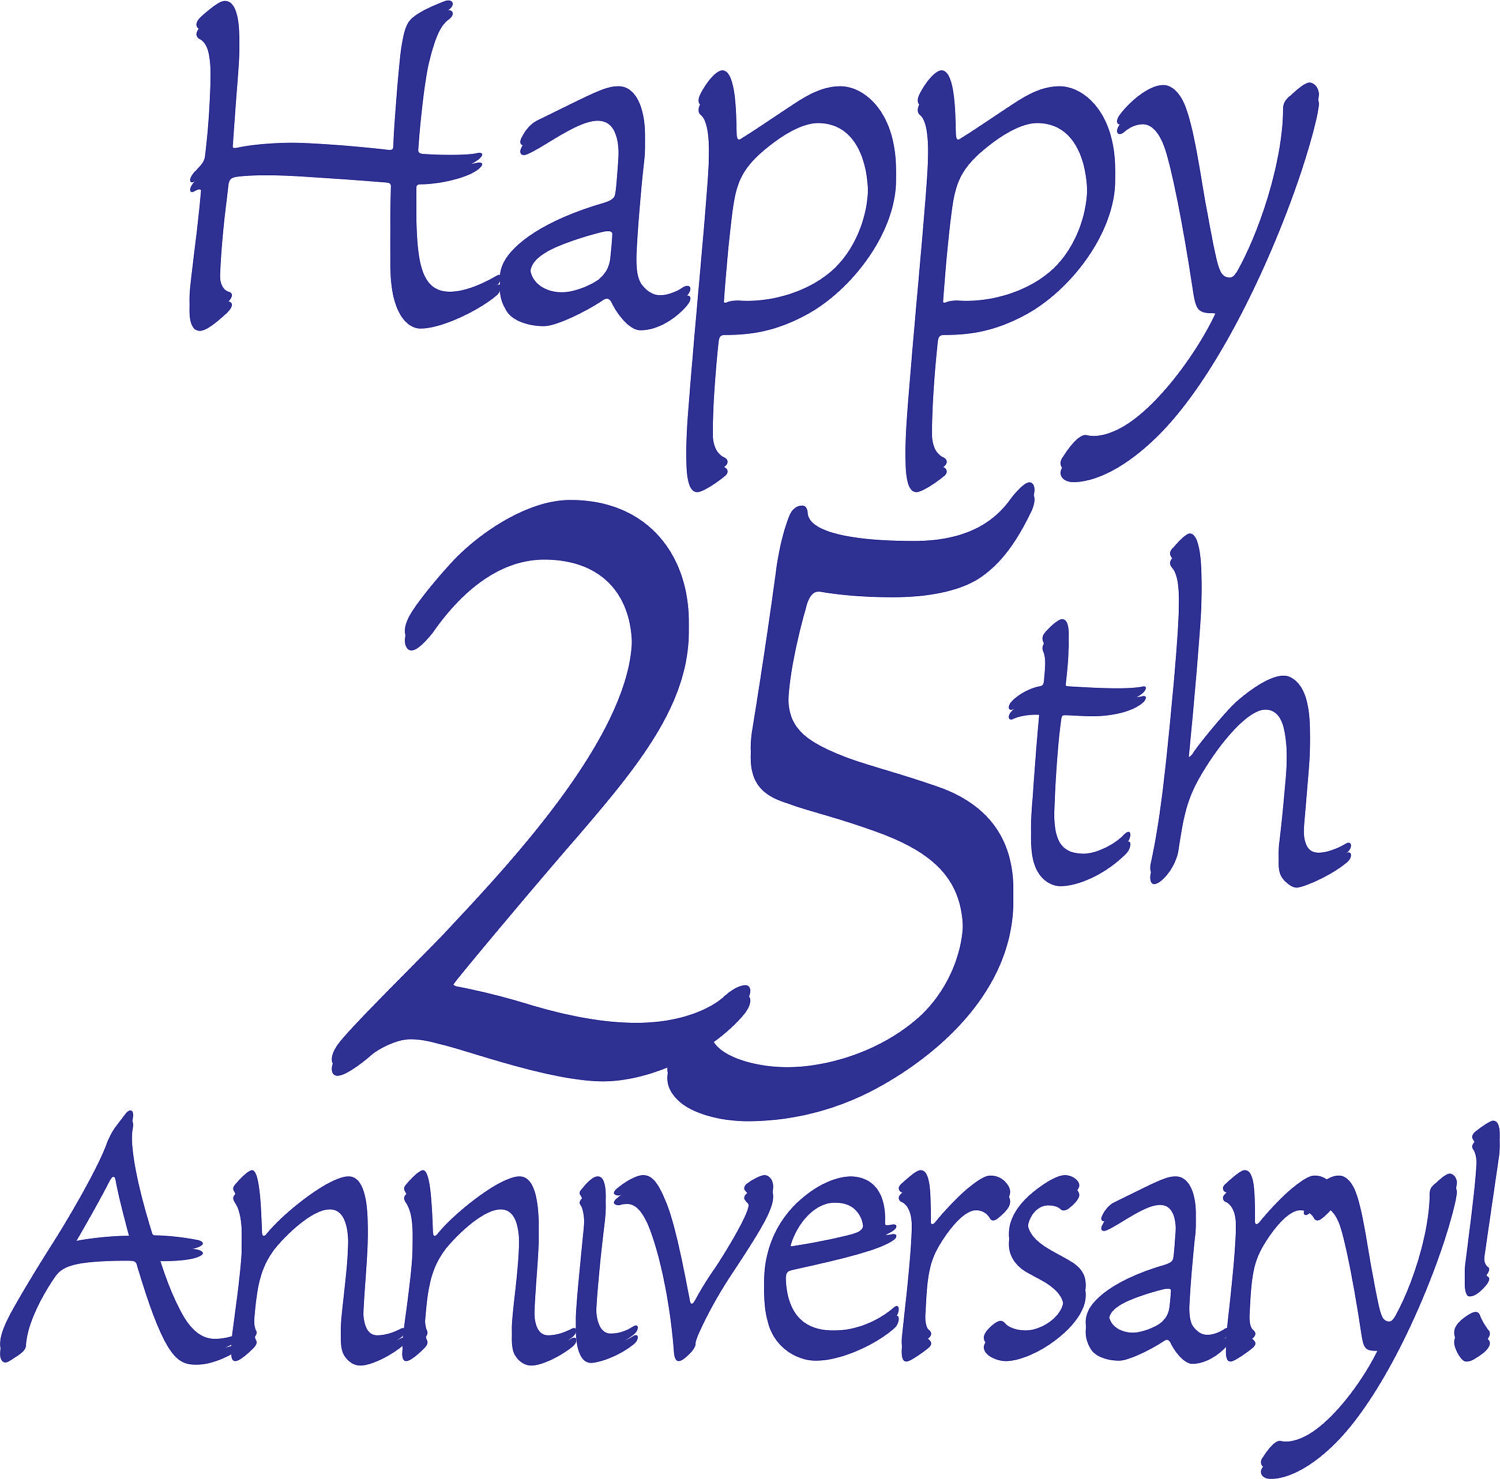 Christian happy anniversary clipart png black and white download Happy 25th anniversary clipart - ClipartFest png black and white download